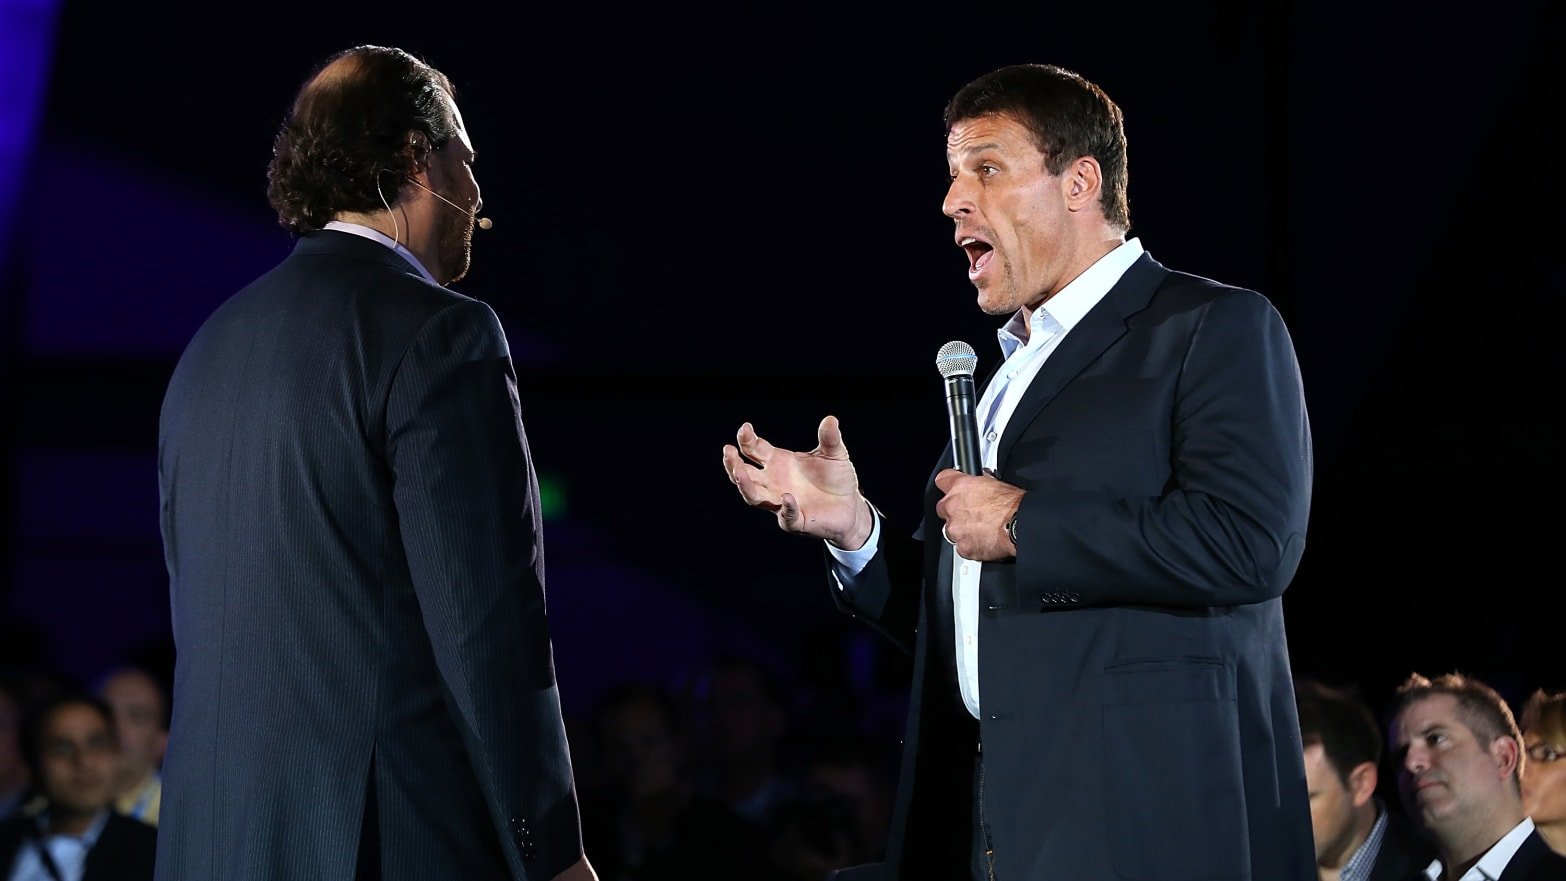 Tony Robbins: Self-Help Guru Denies Sexual Harassment